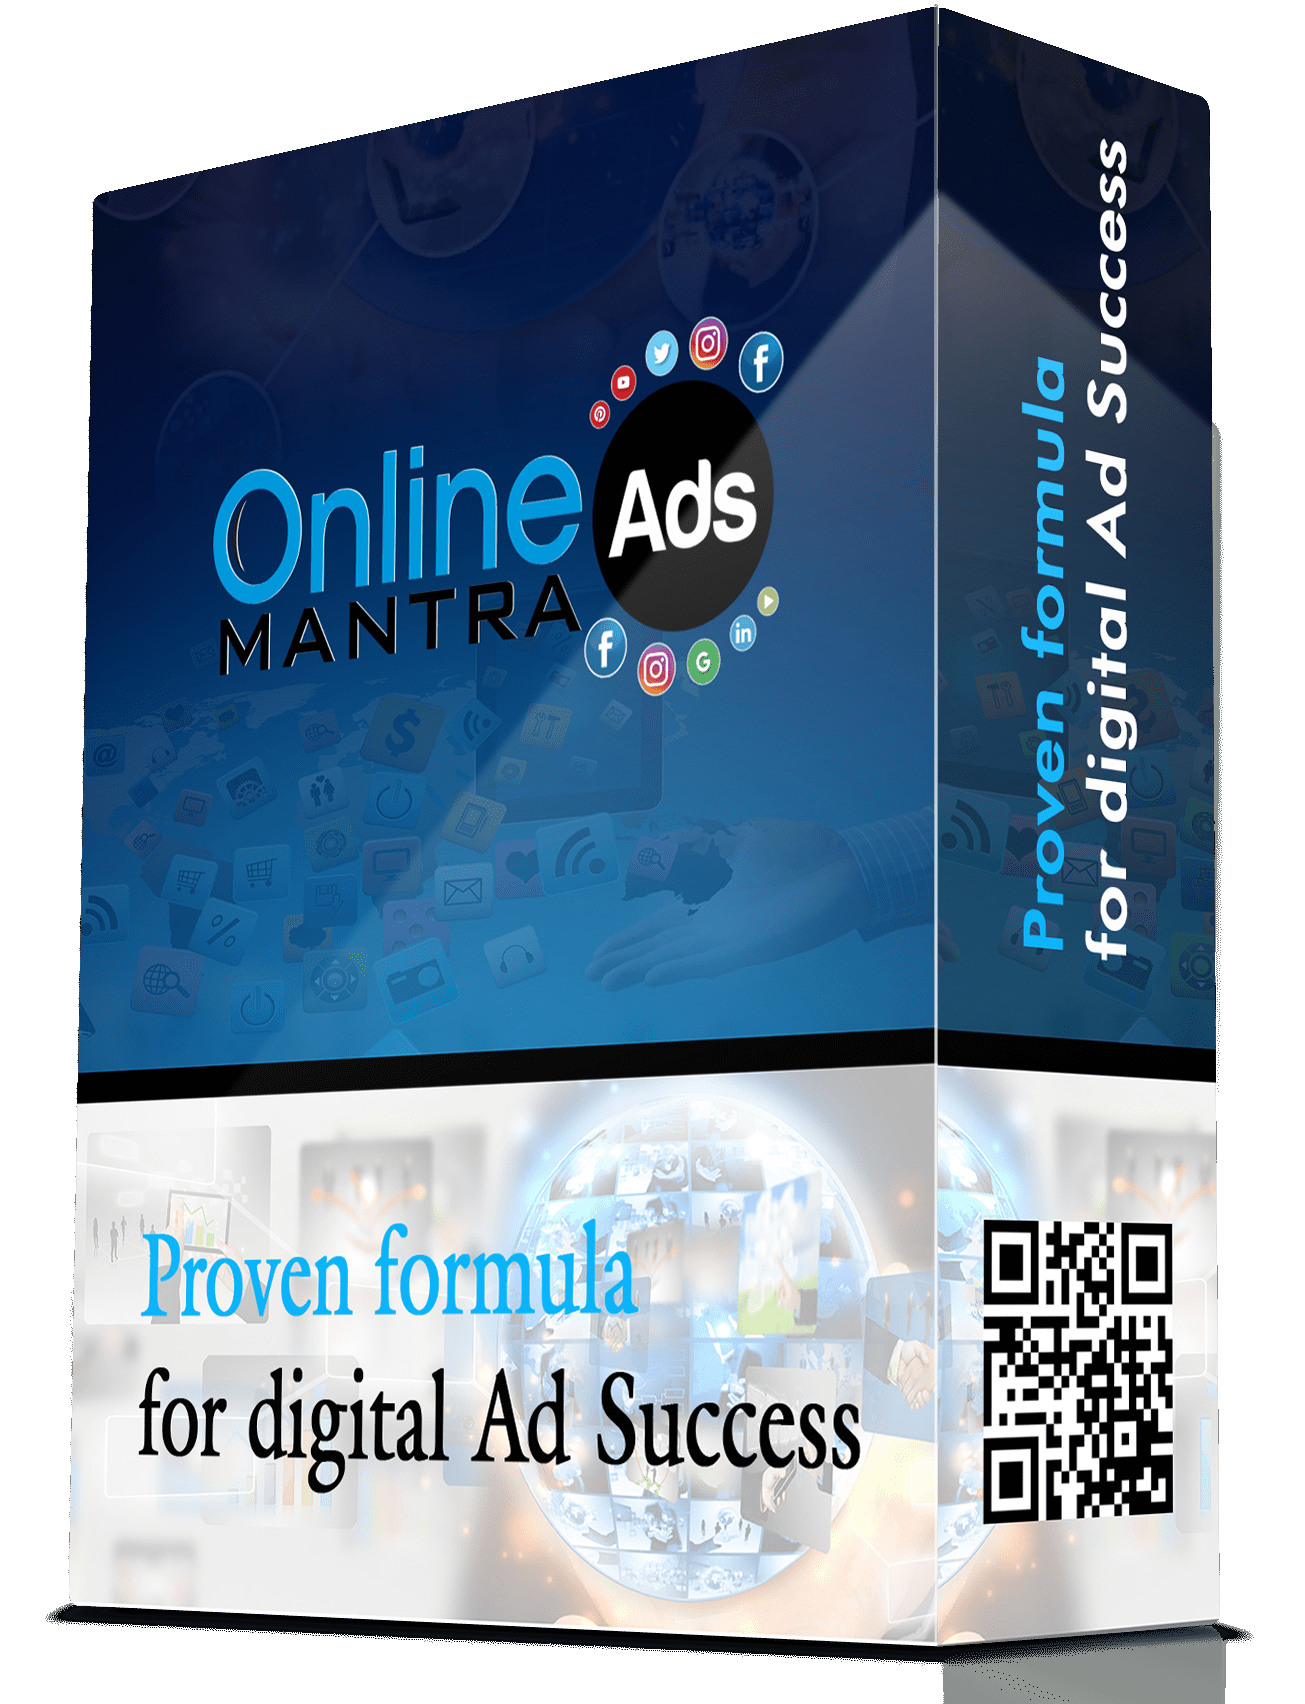 OnlineAdsMantra p Online Ads Mantra